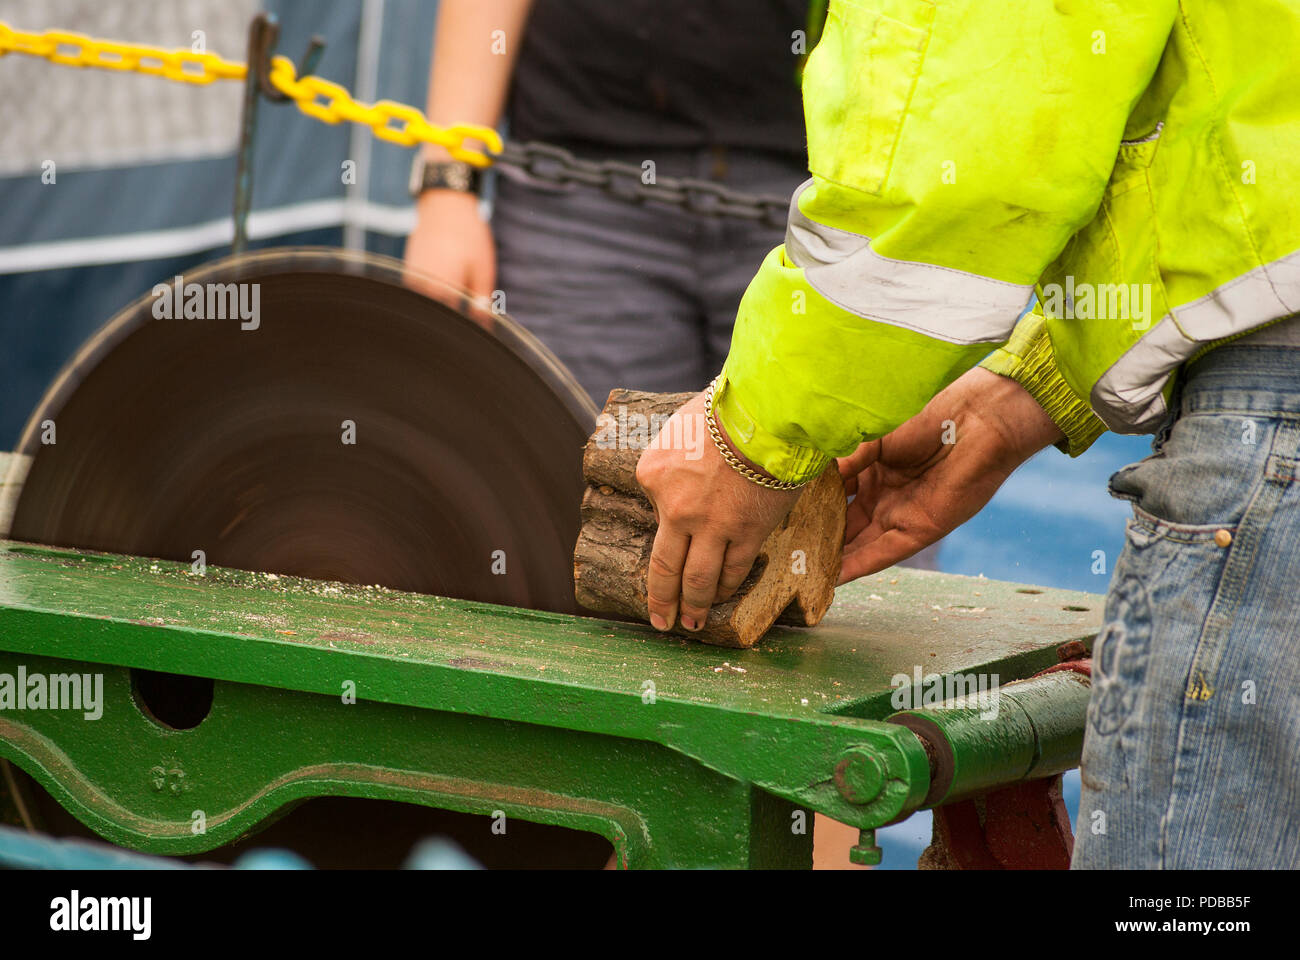 A man cutting wood on a table saw with fingers very close to the spinning blade - Stock Image